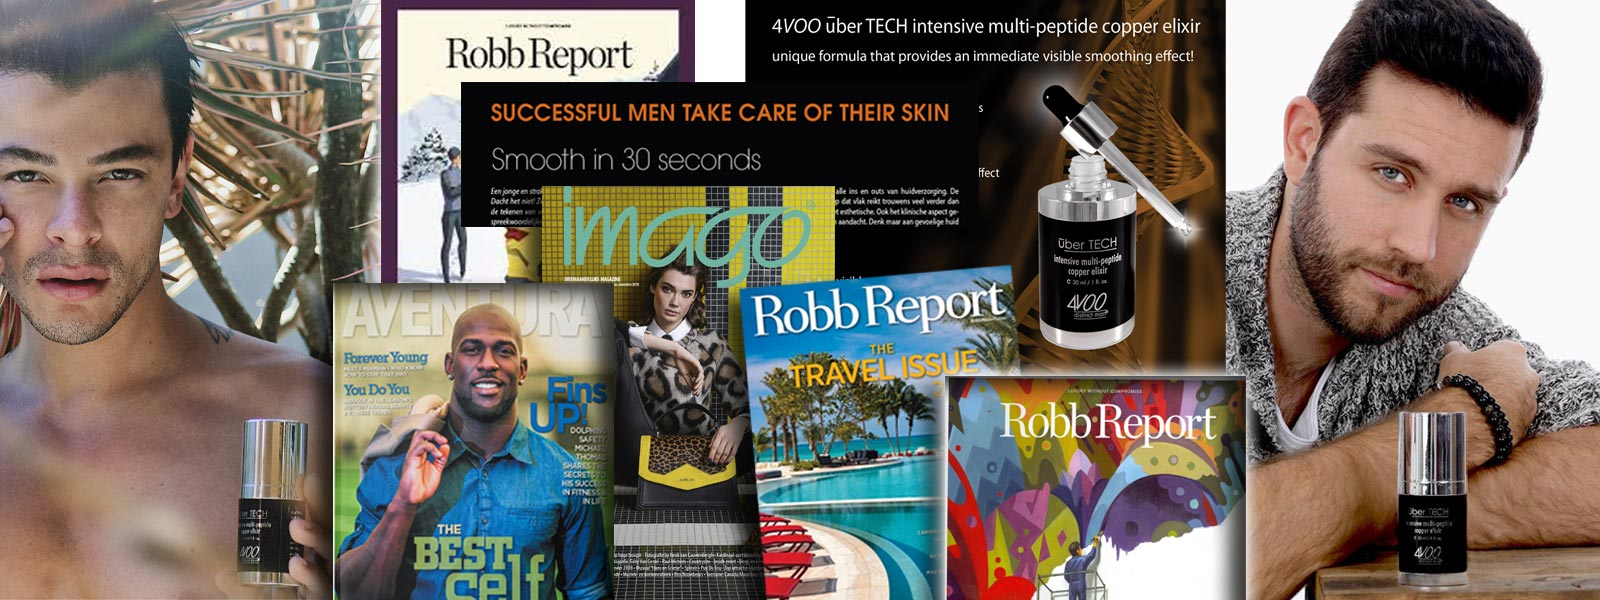 4VOO uber TECH  intensive multi-peptide copper elixir recommended by press